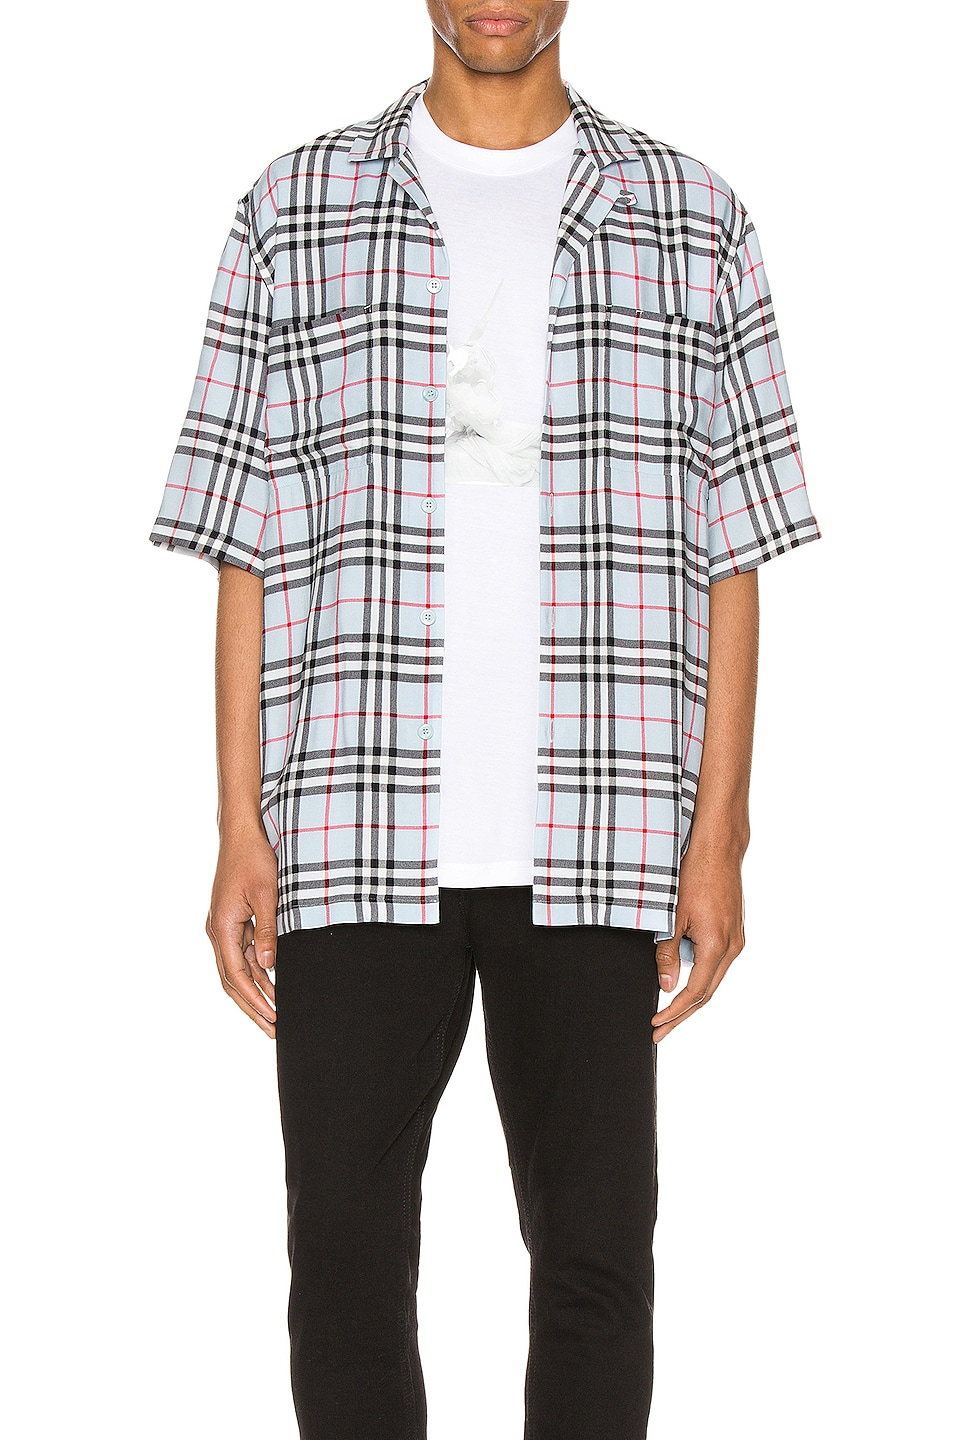 Image 1 of Burberry Raymouth Button Down Shirt in Pale Blue IP Check